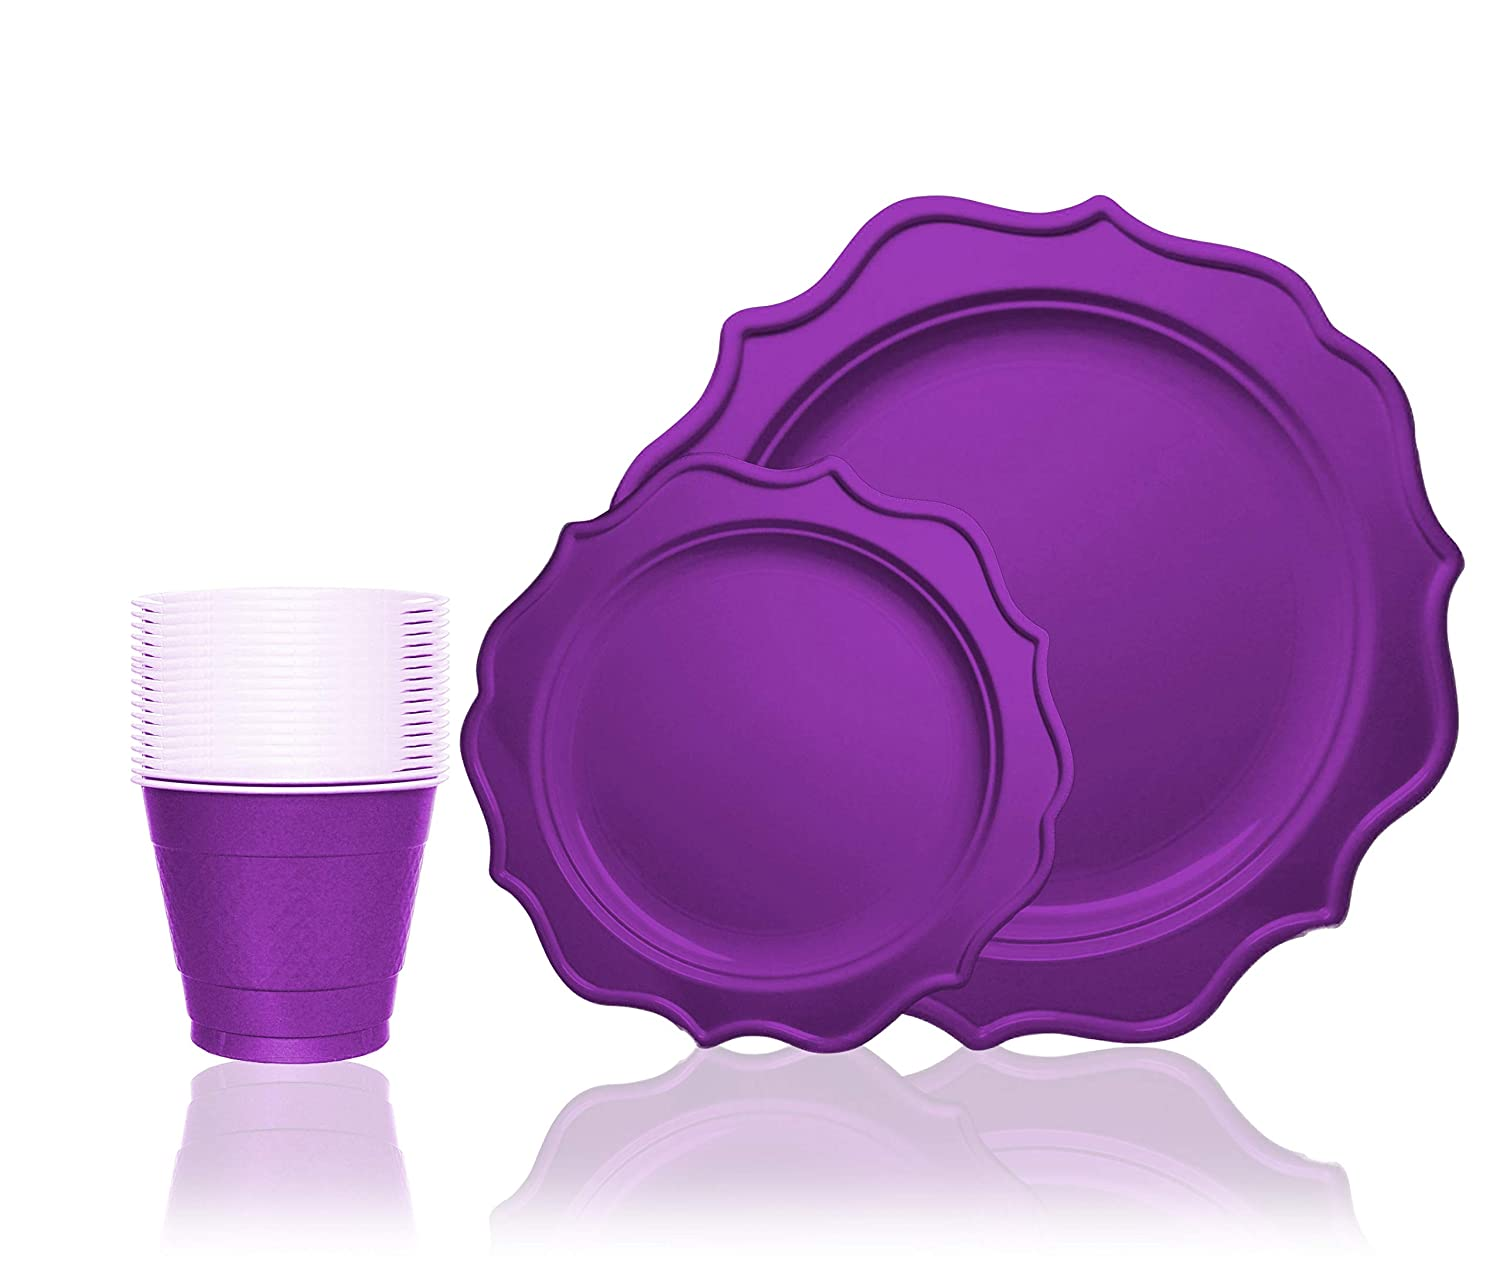 Tiger Chef 288-Pack Purple Color Scalloped Rim Disposable Party Supplies Set for 96 Guests, includes 96 10-Inch Dinner Plates, 96 8-Inch Plastic Plates and 96 9-Ounce Cups - BPA-Free